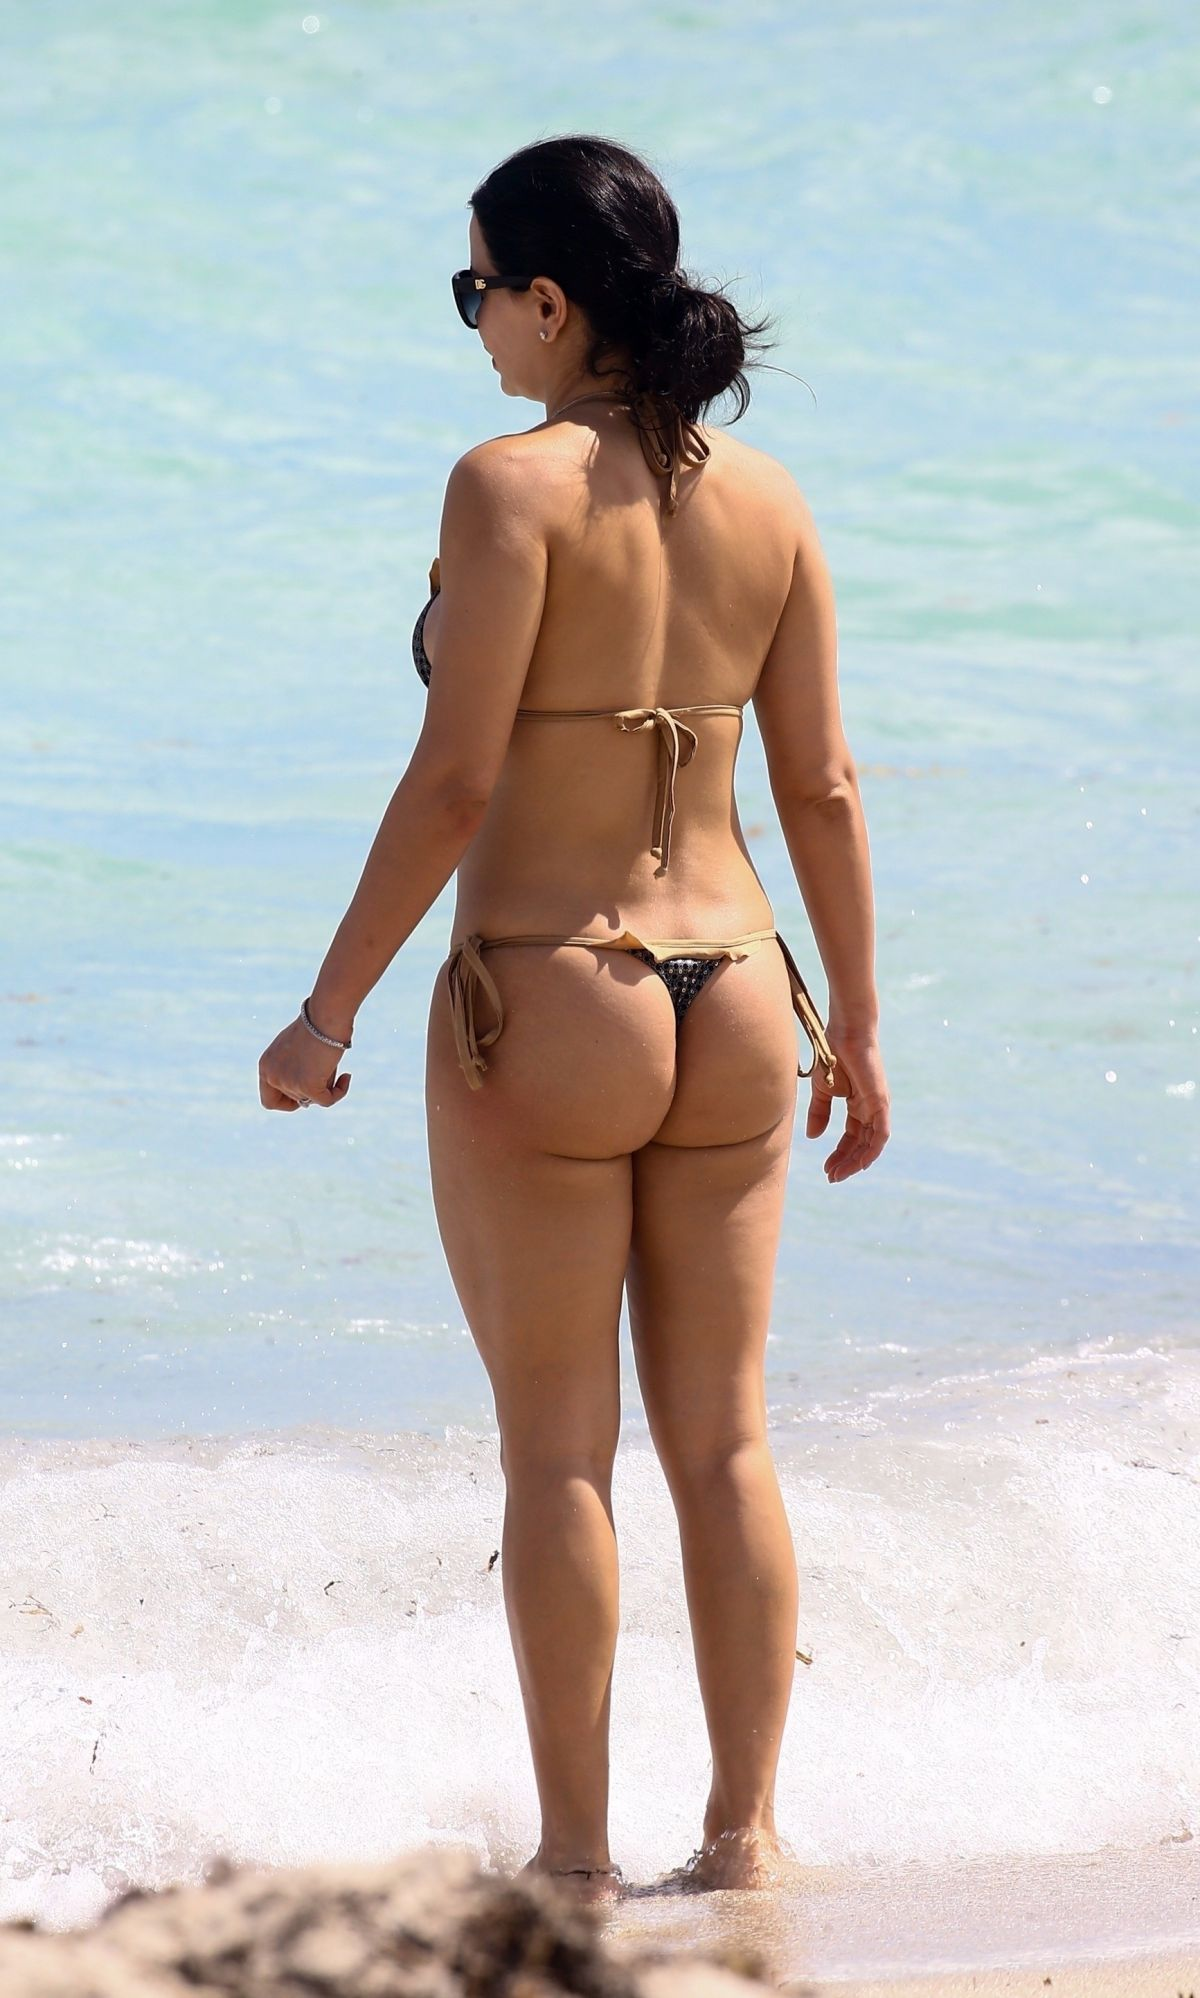 Kathy Picos in Bikini on the beach in Miami Pic 13 of 35